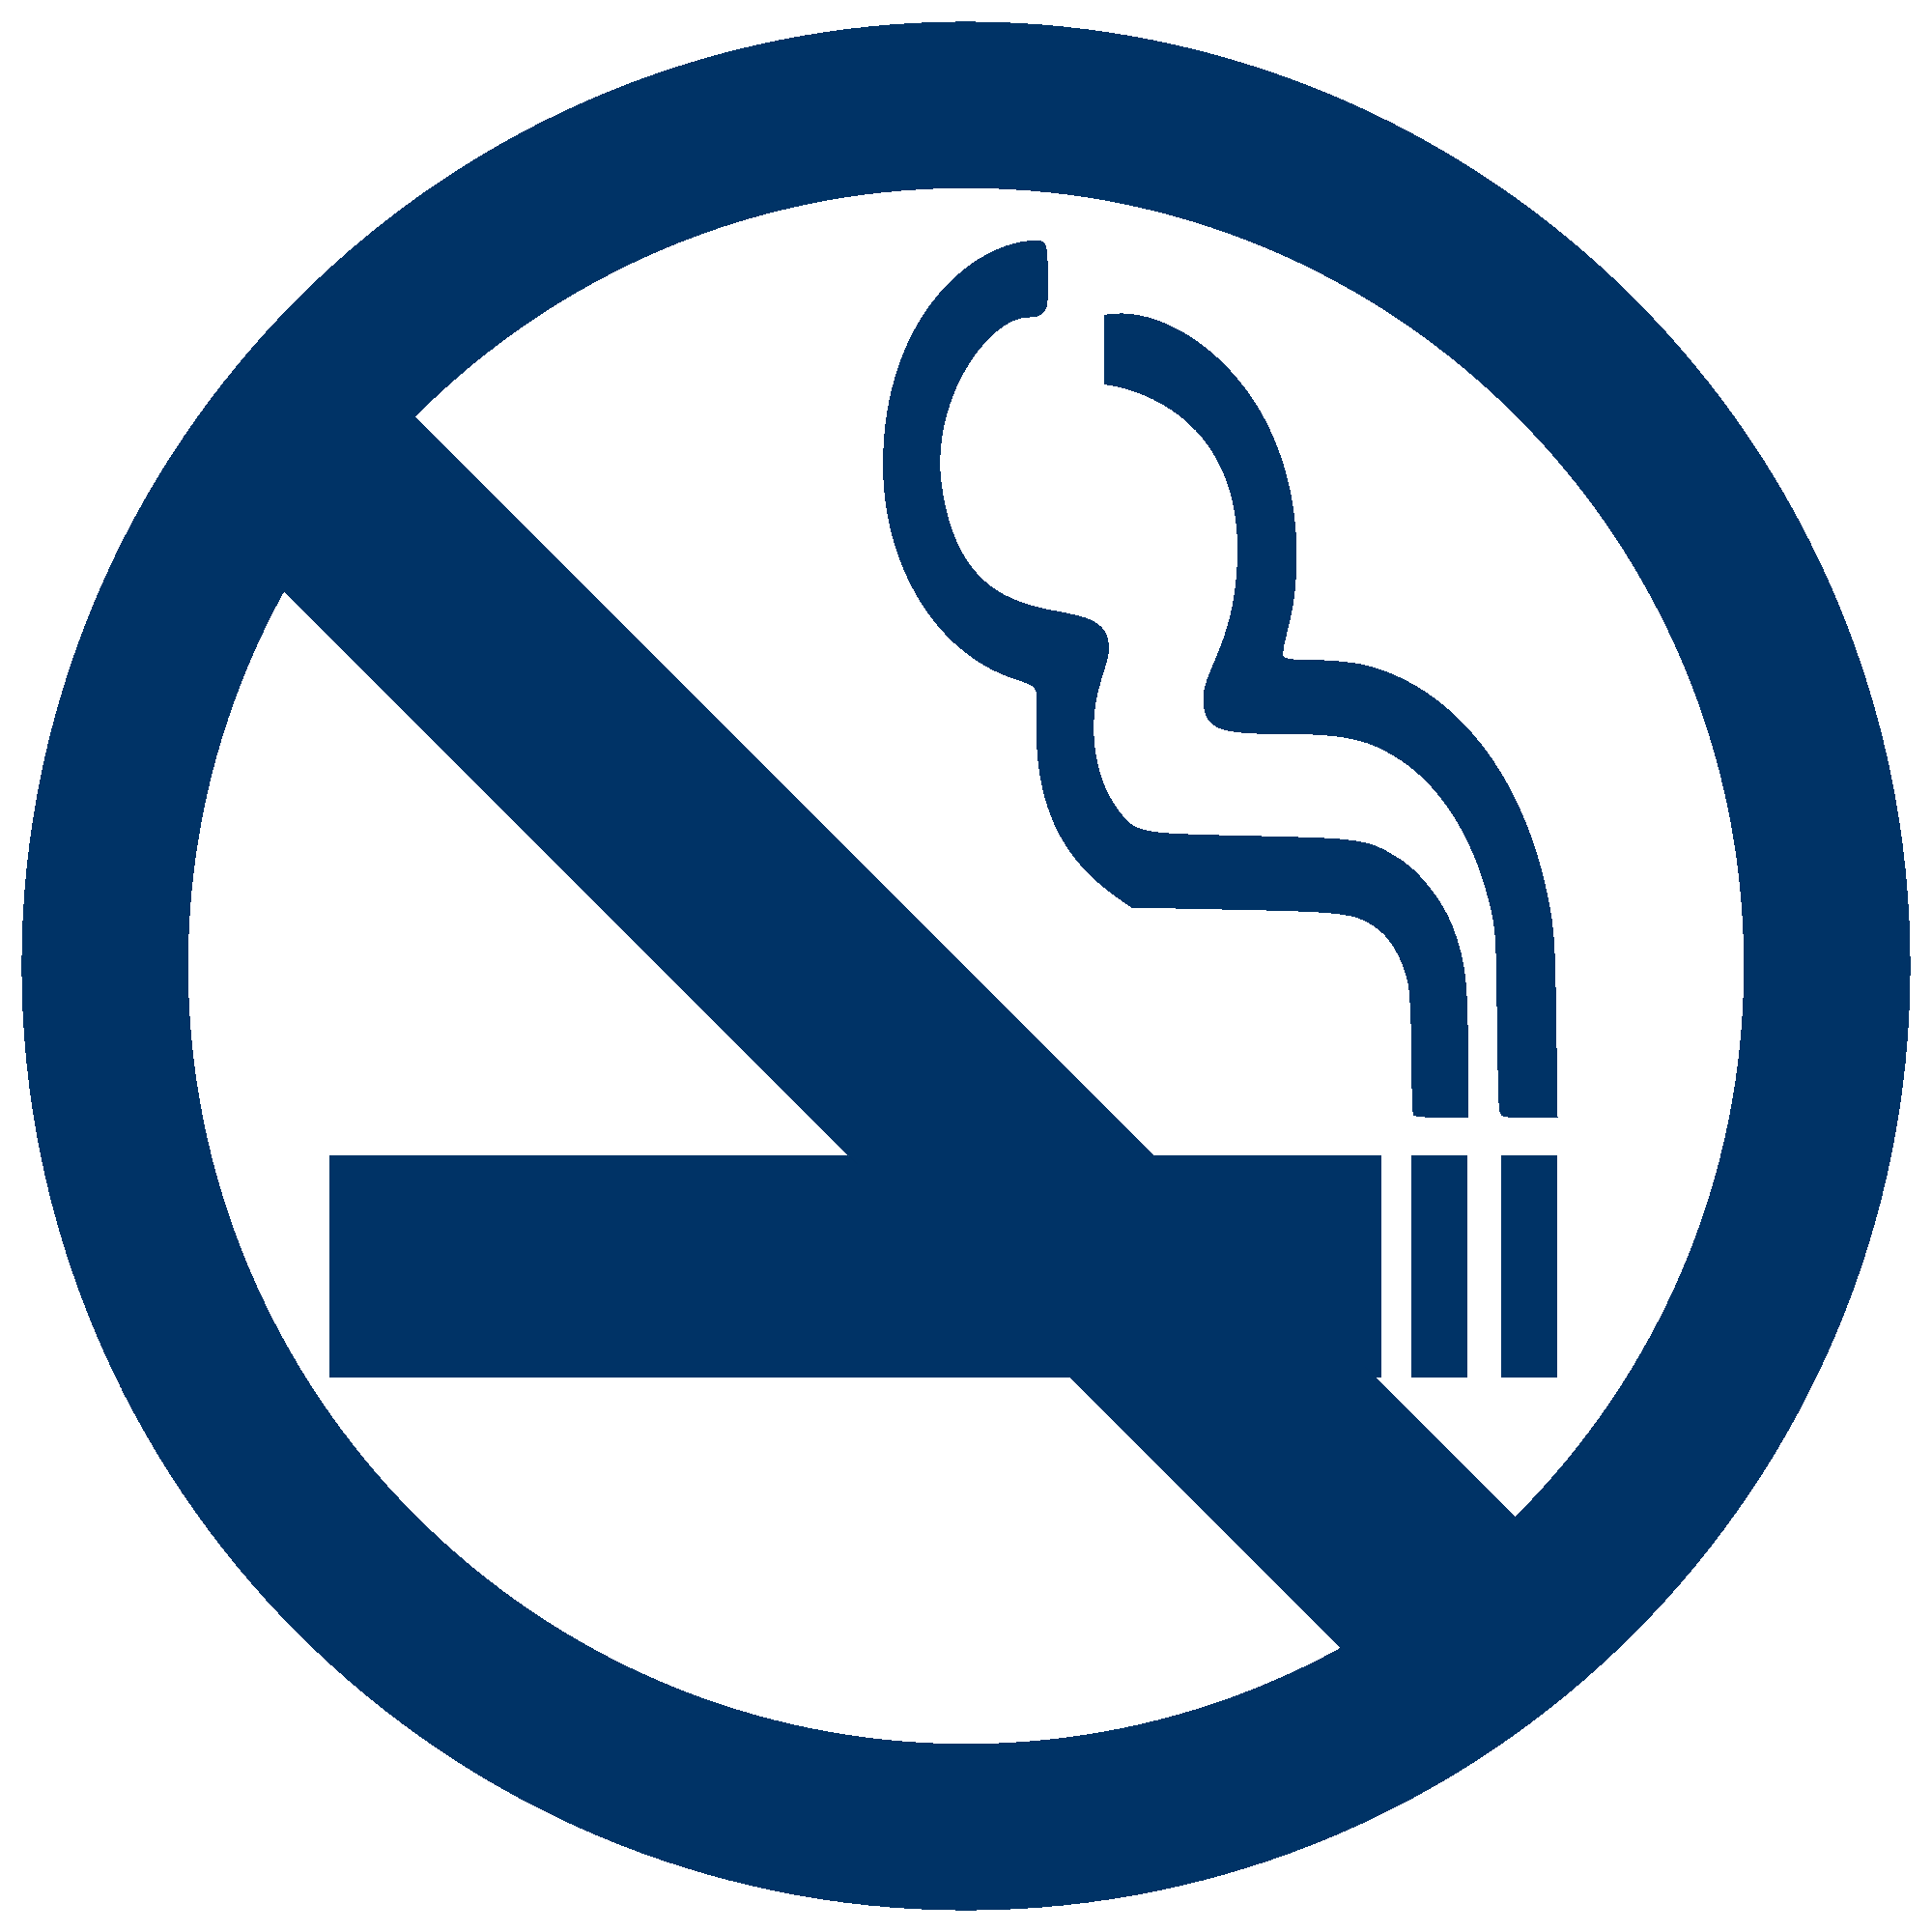 Tobacco icon